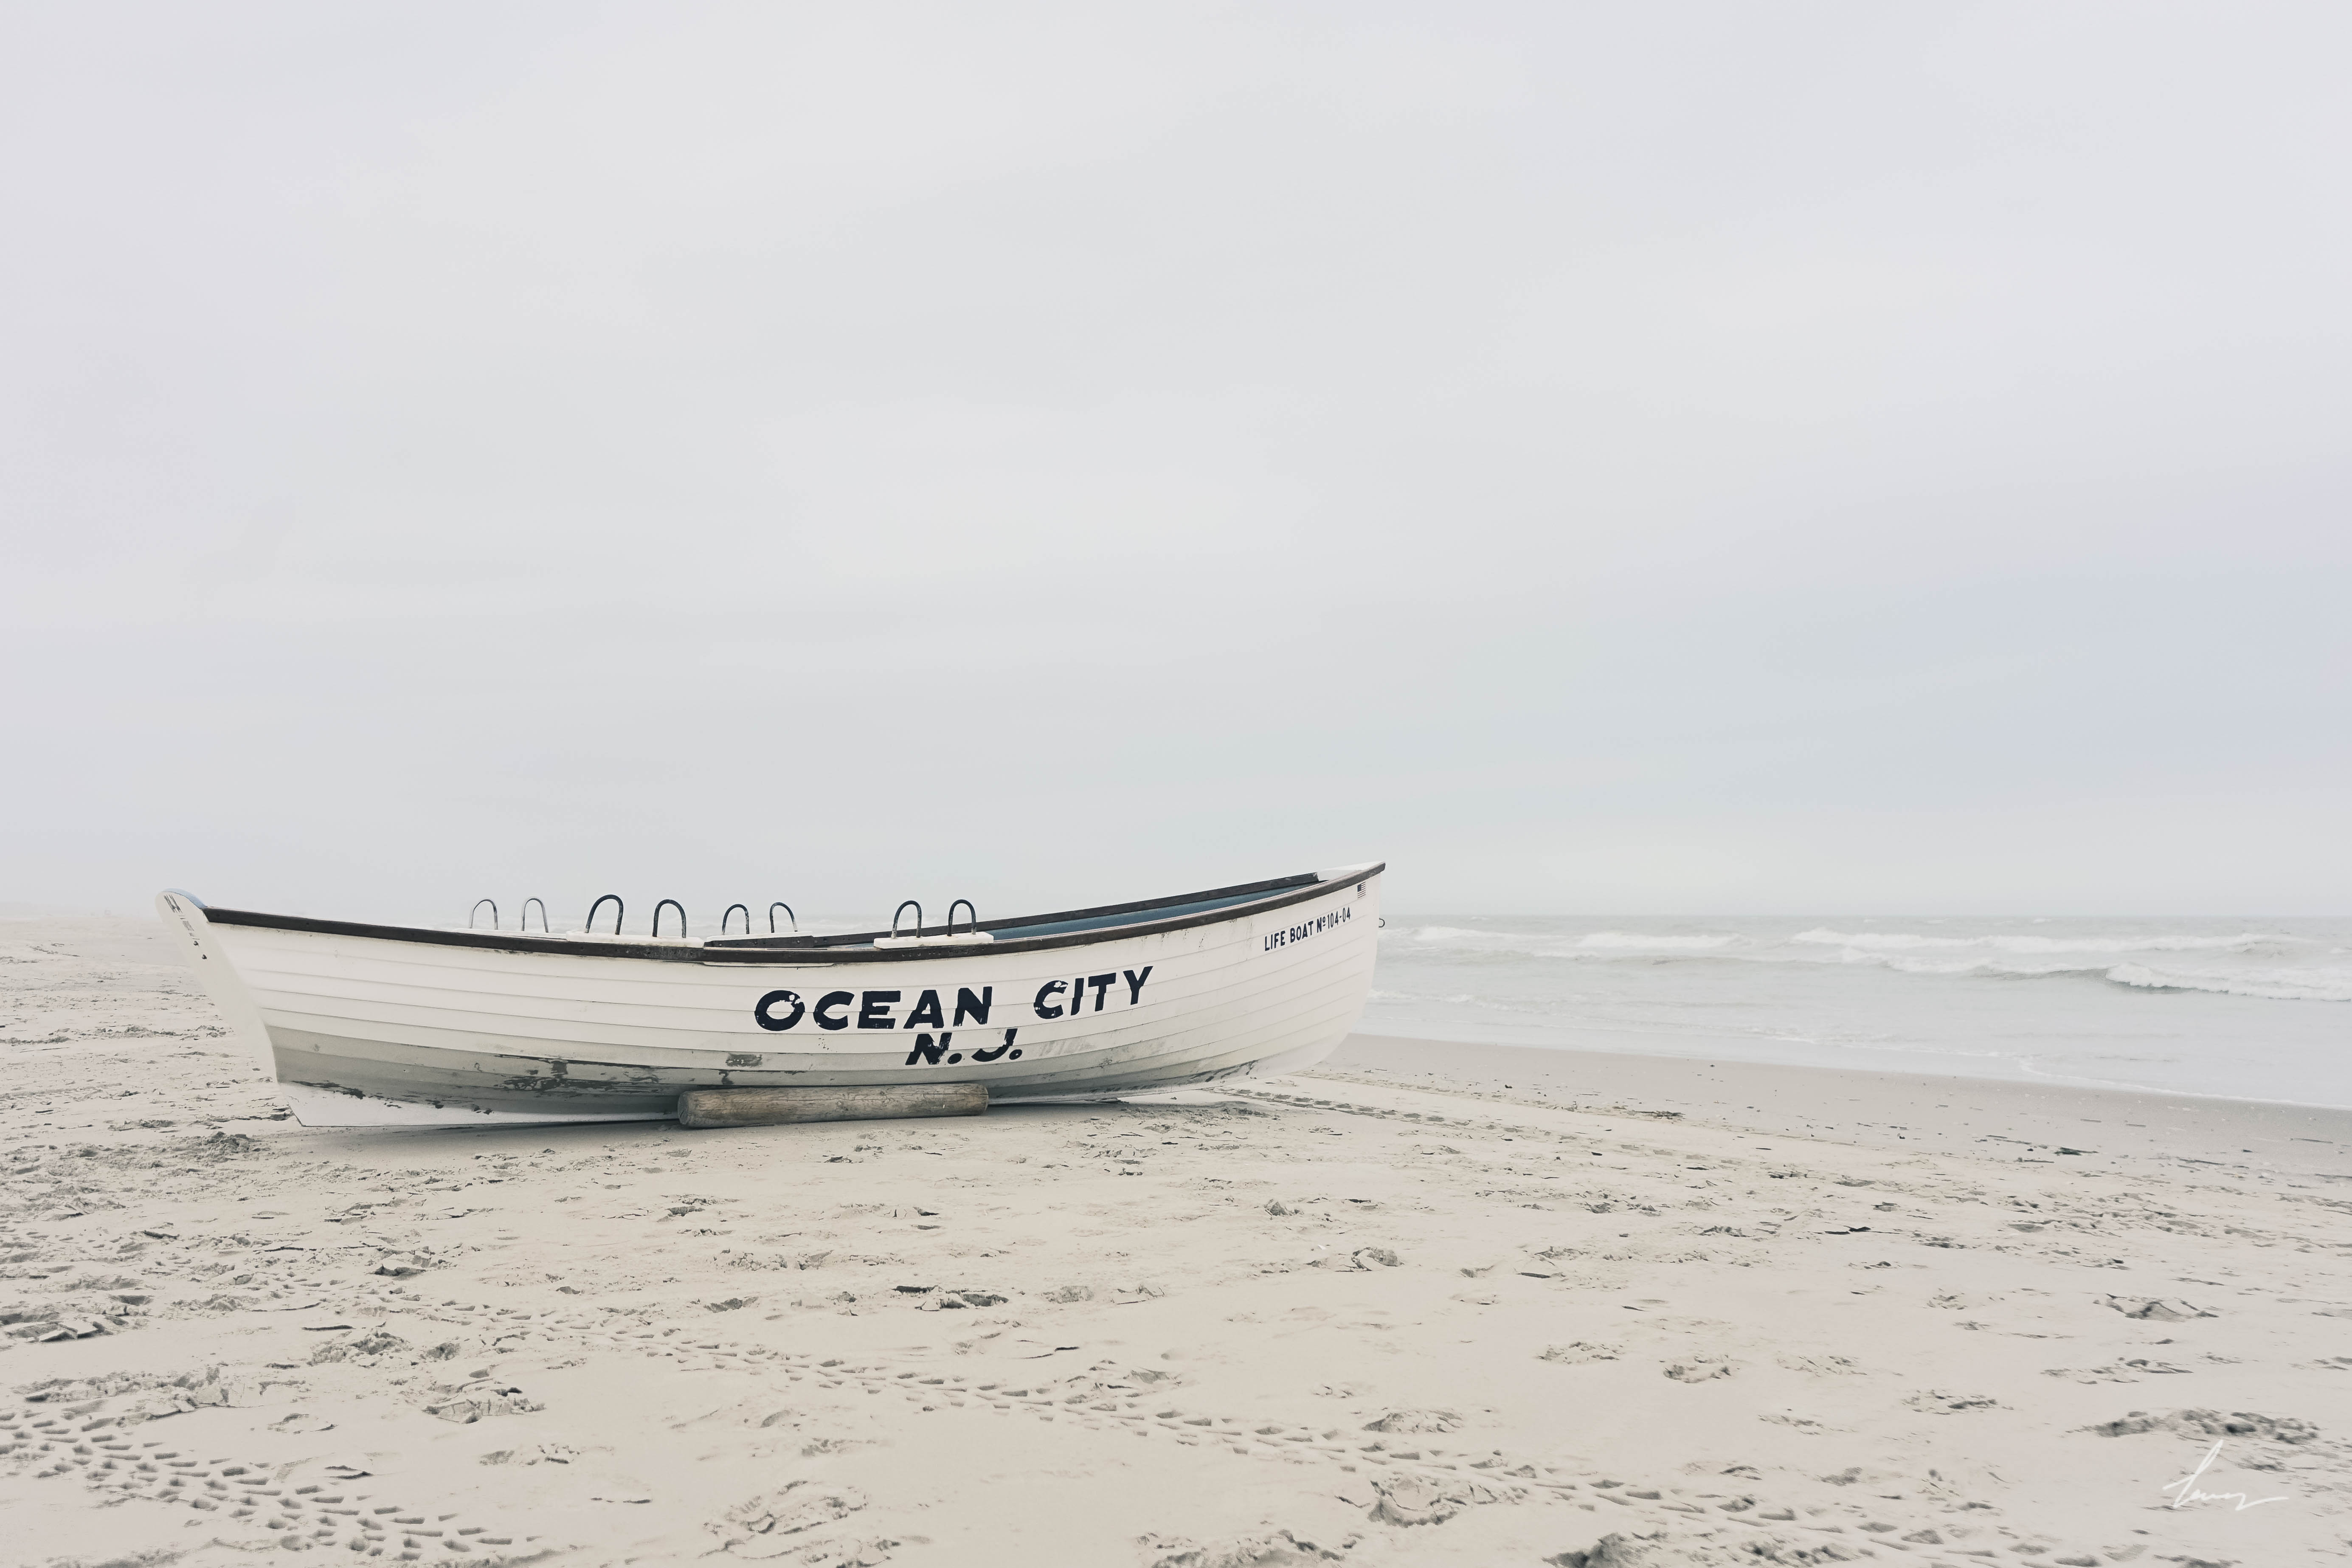 Lifeguard Boat - Ocean City, New Jersey